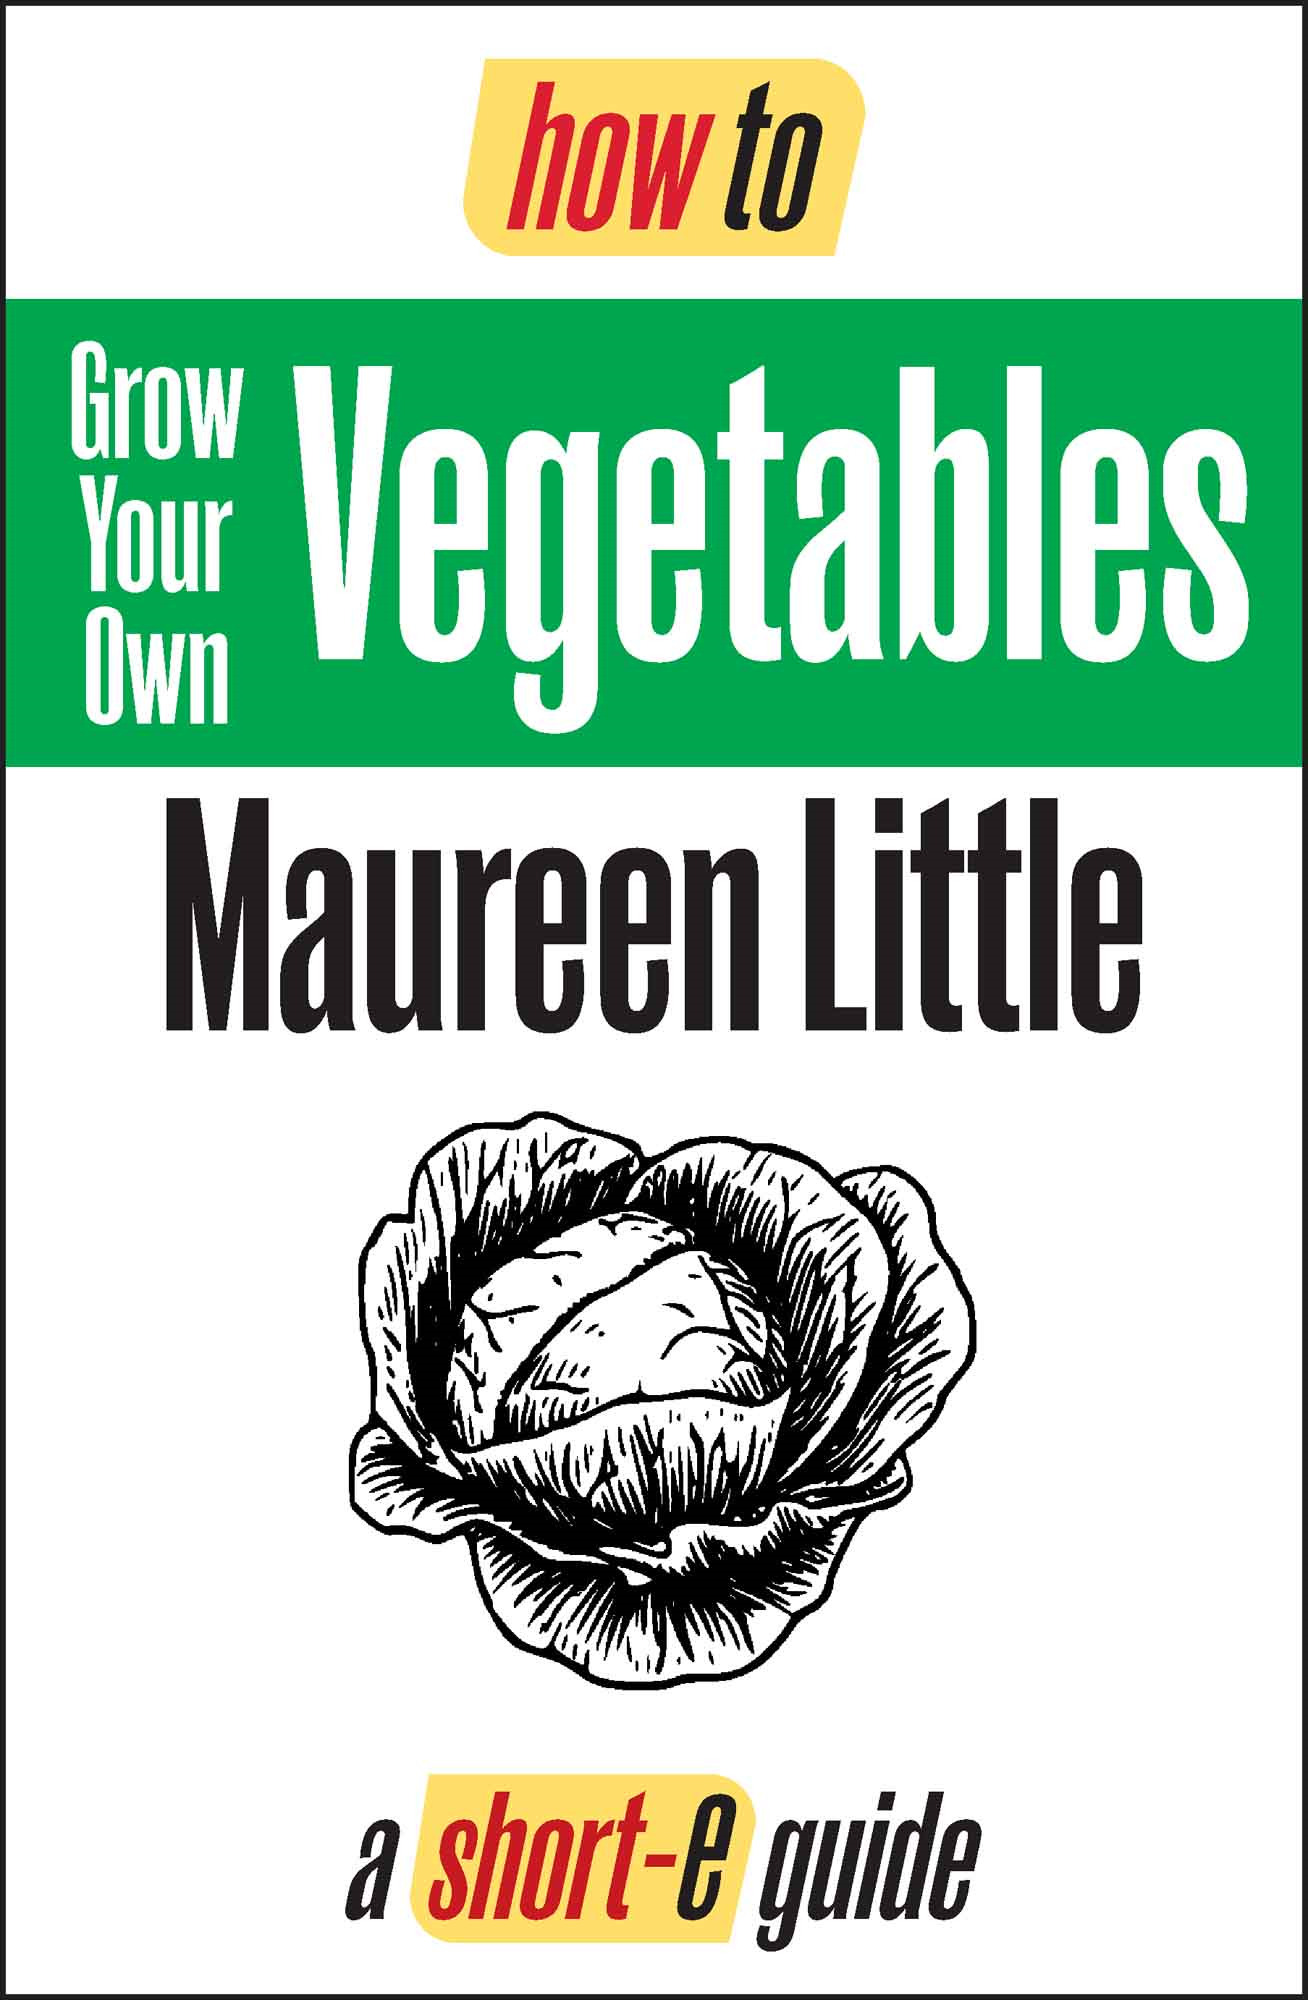 How To Grow Your Own Vegetables (Short-e Guide) By: Maureen Little